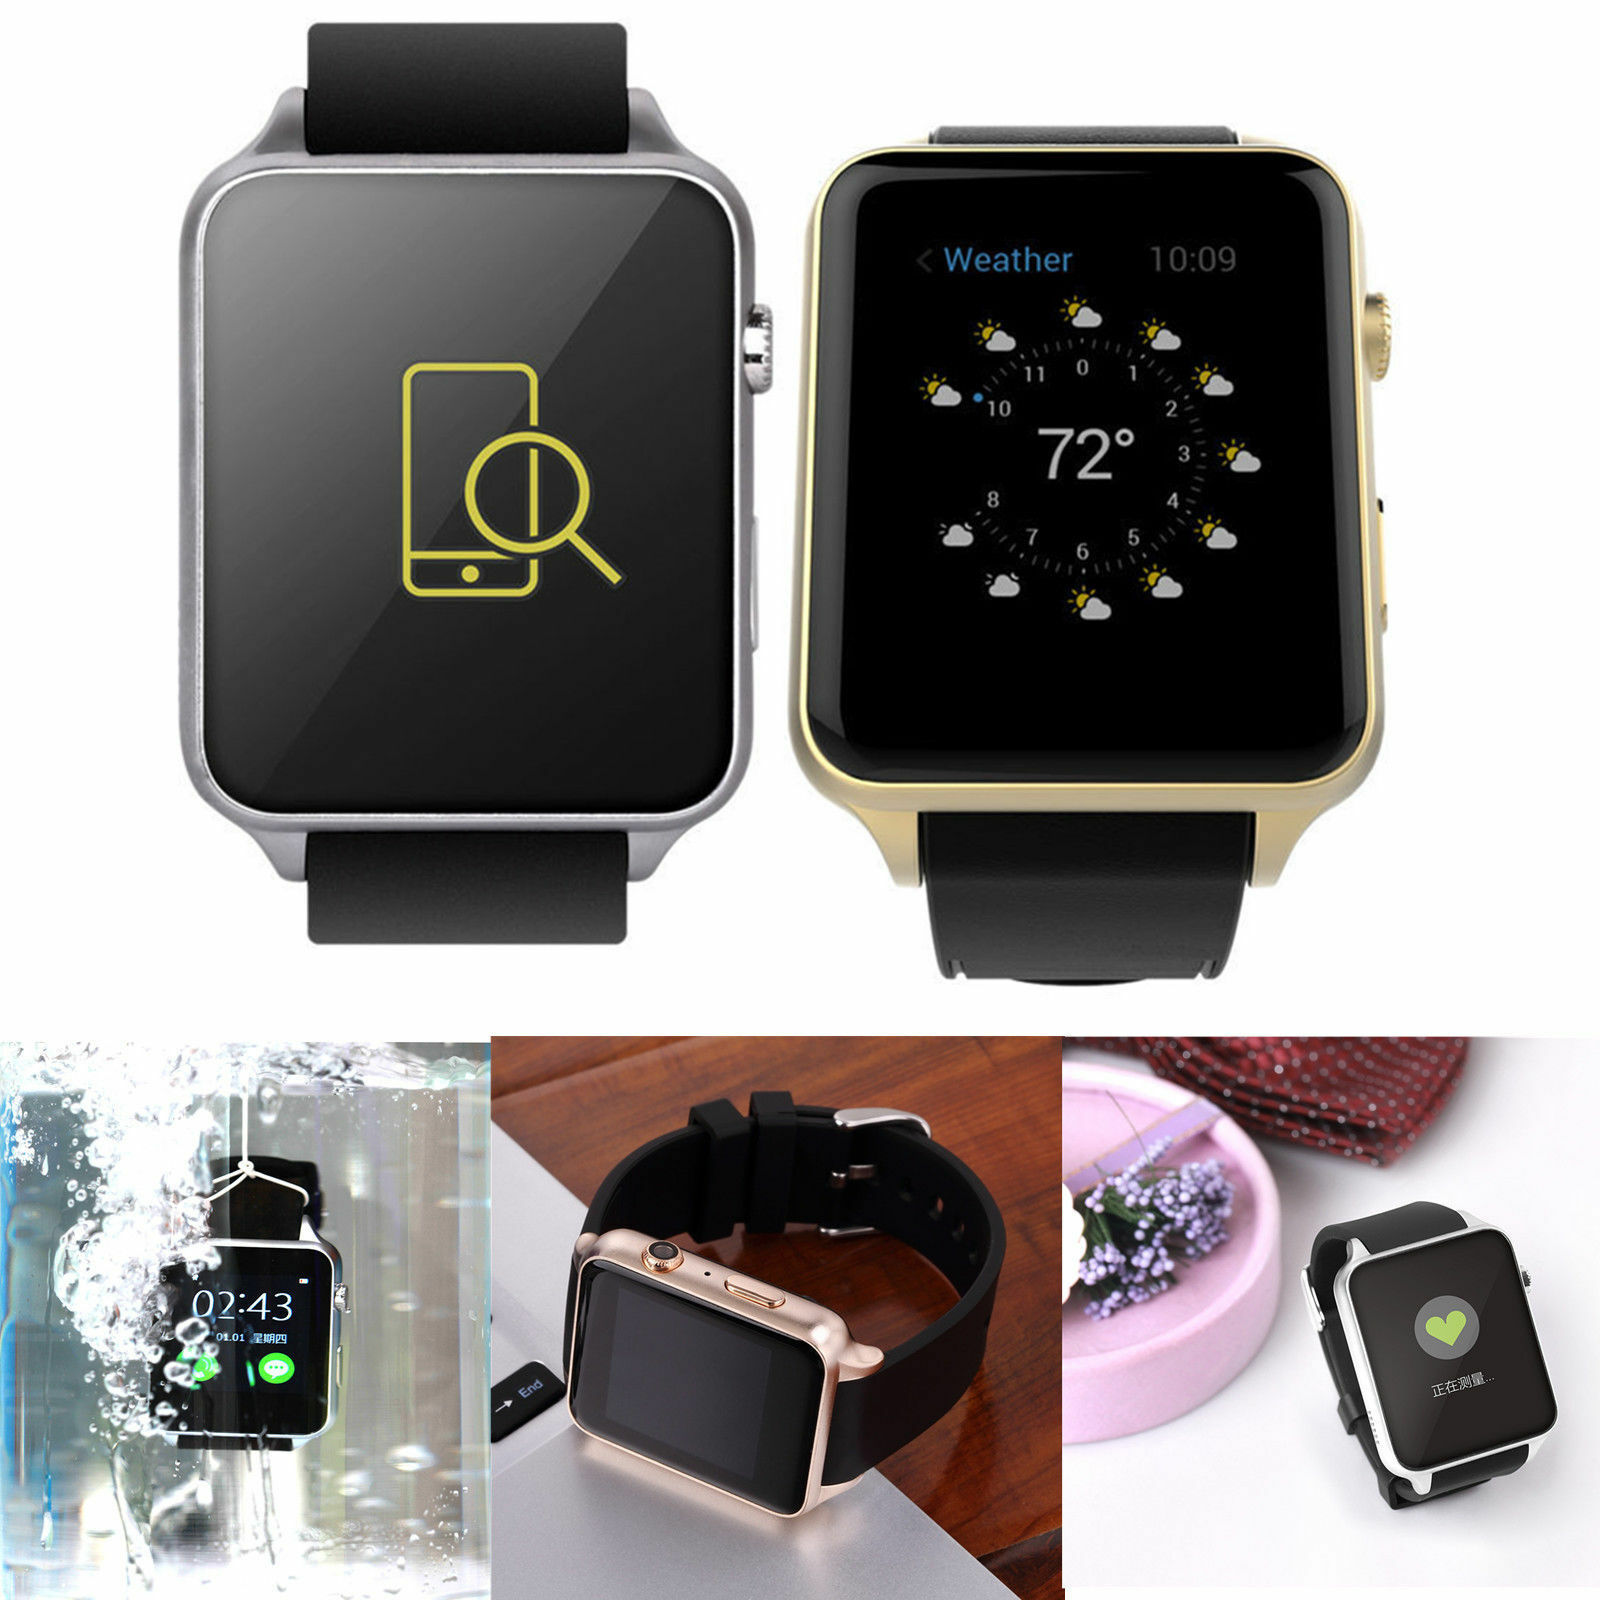 ionic a fitbit watchfaces face updated products unless buy watch watches yes versa the review instead you phone mobile puppy fitness